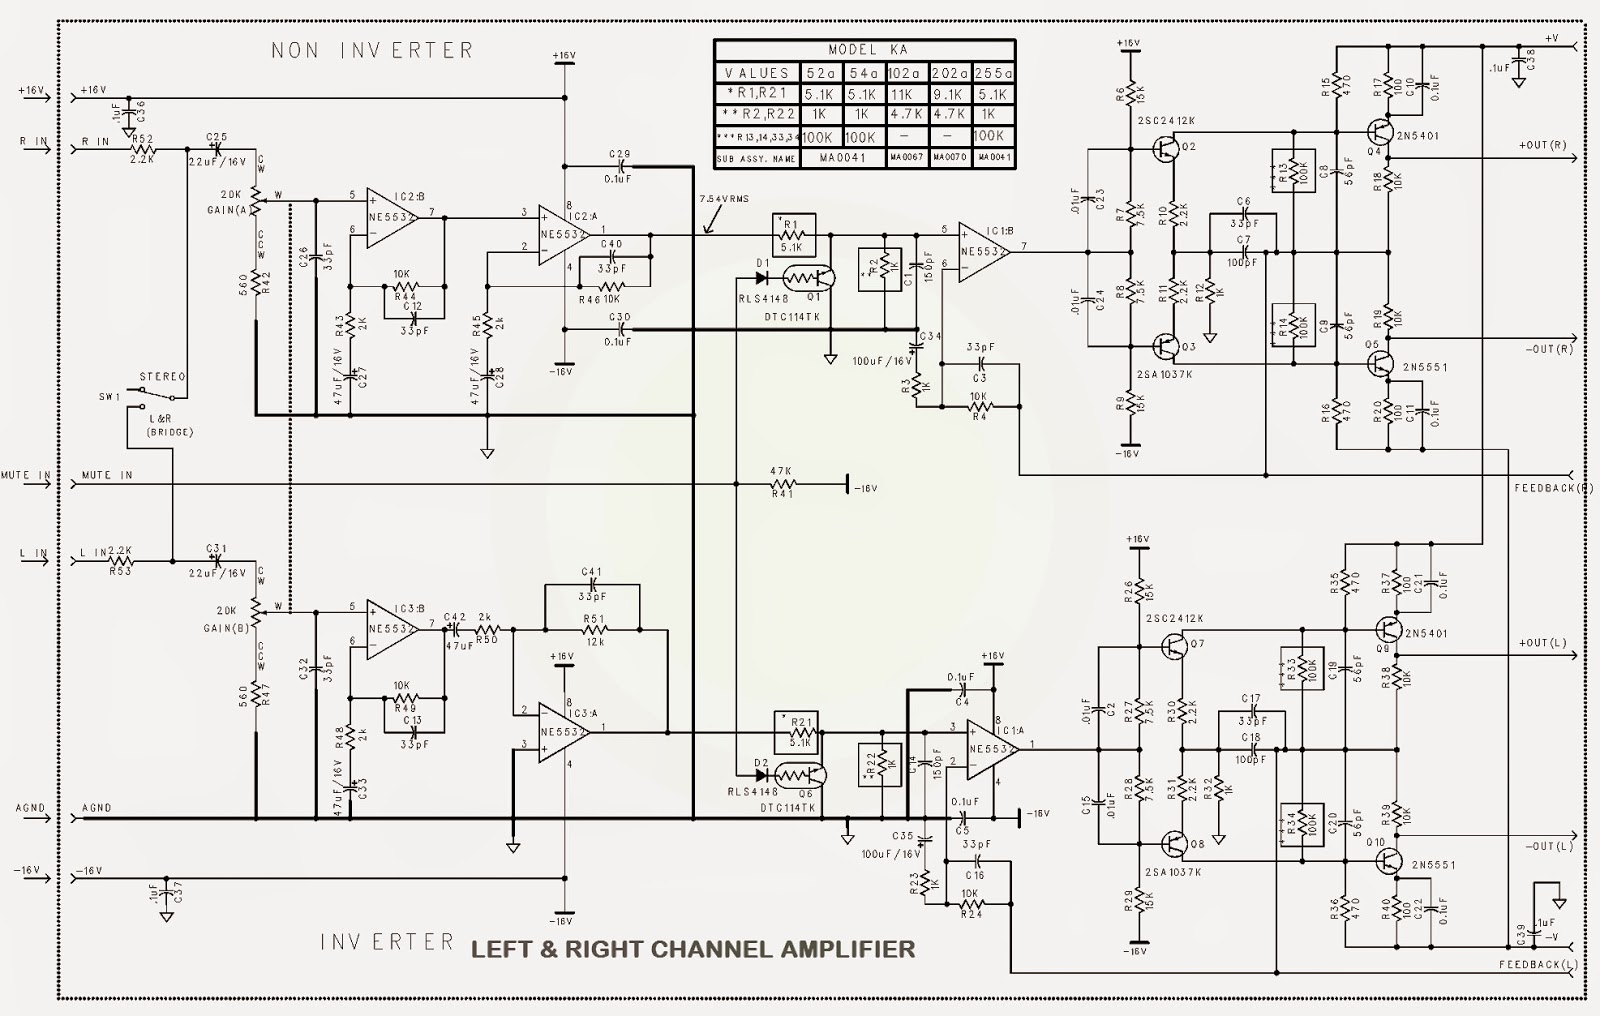 Infinity Car Stereo Wiring Diagram Free Download Wiring